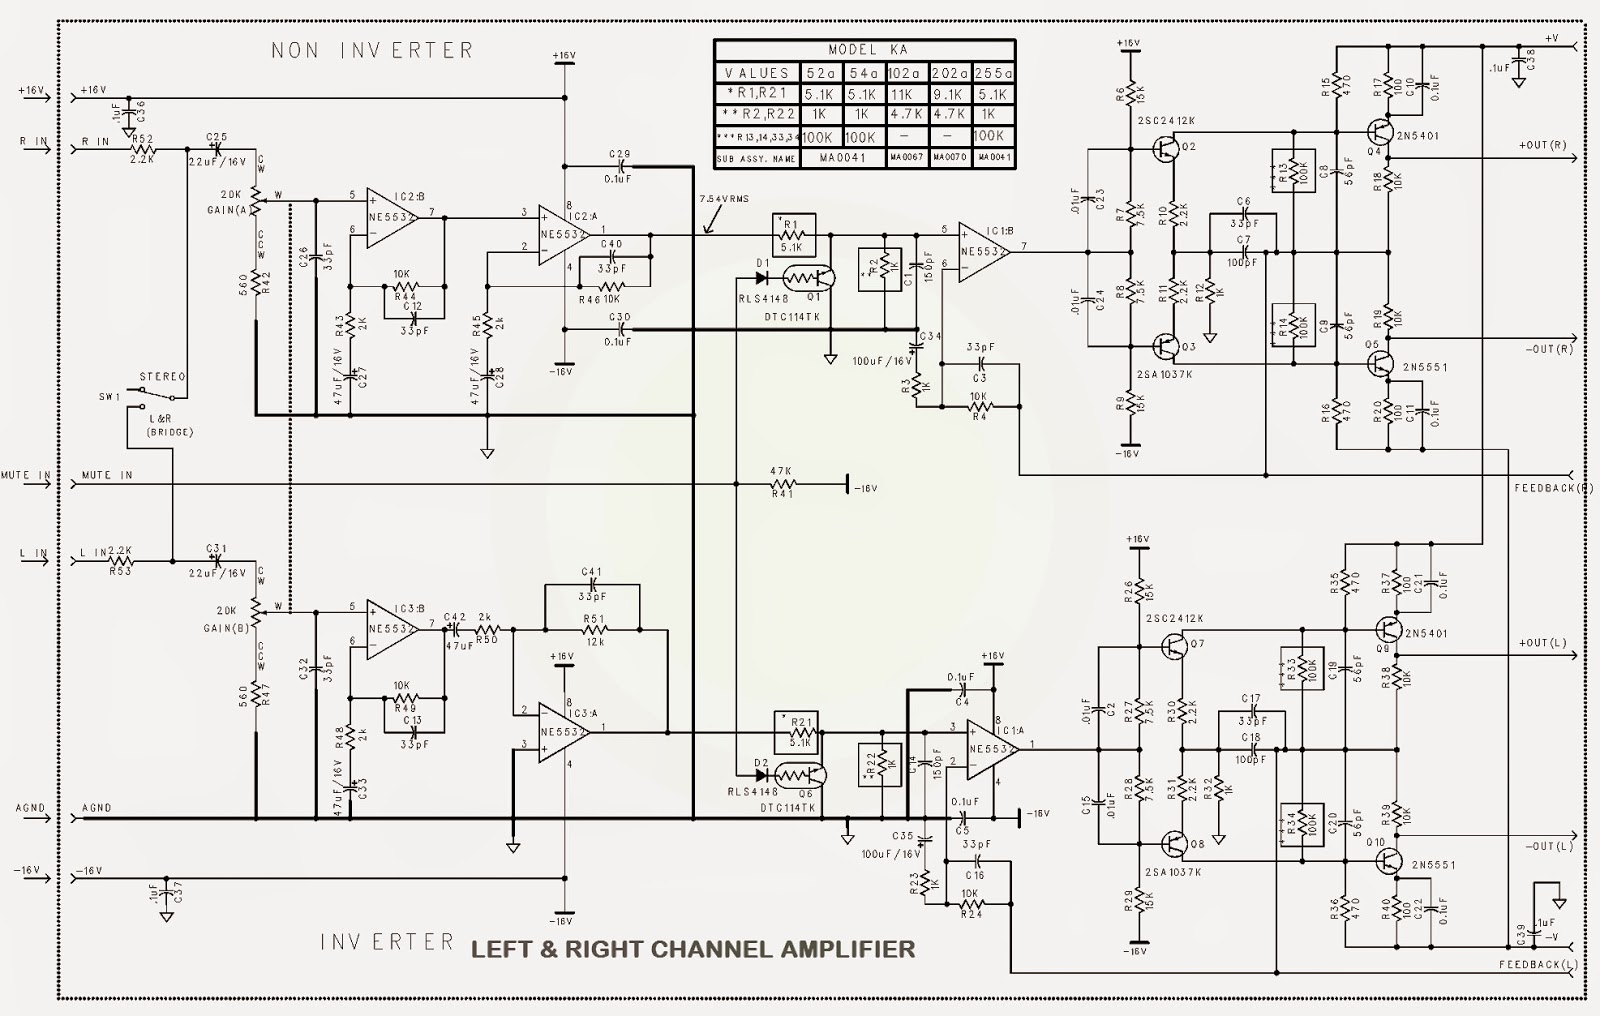 Infinity Car Stereo Wiring Diagram Free Download Wiring